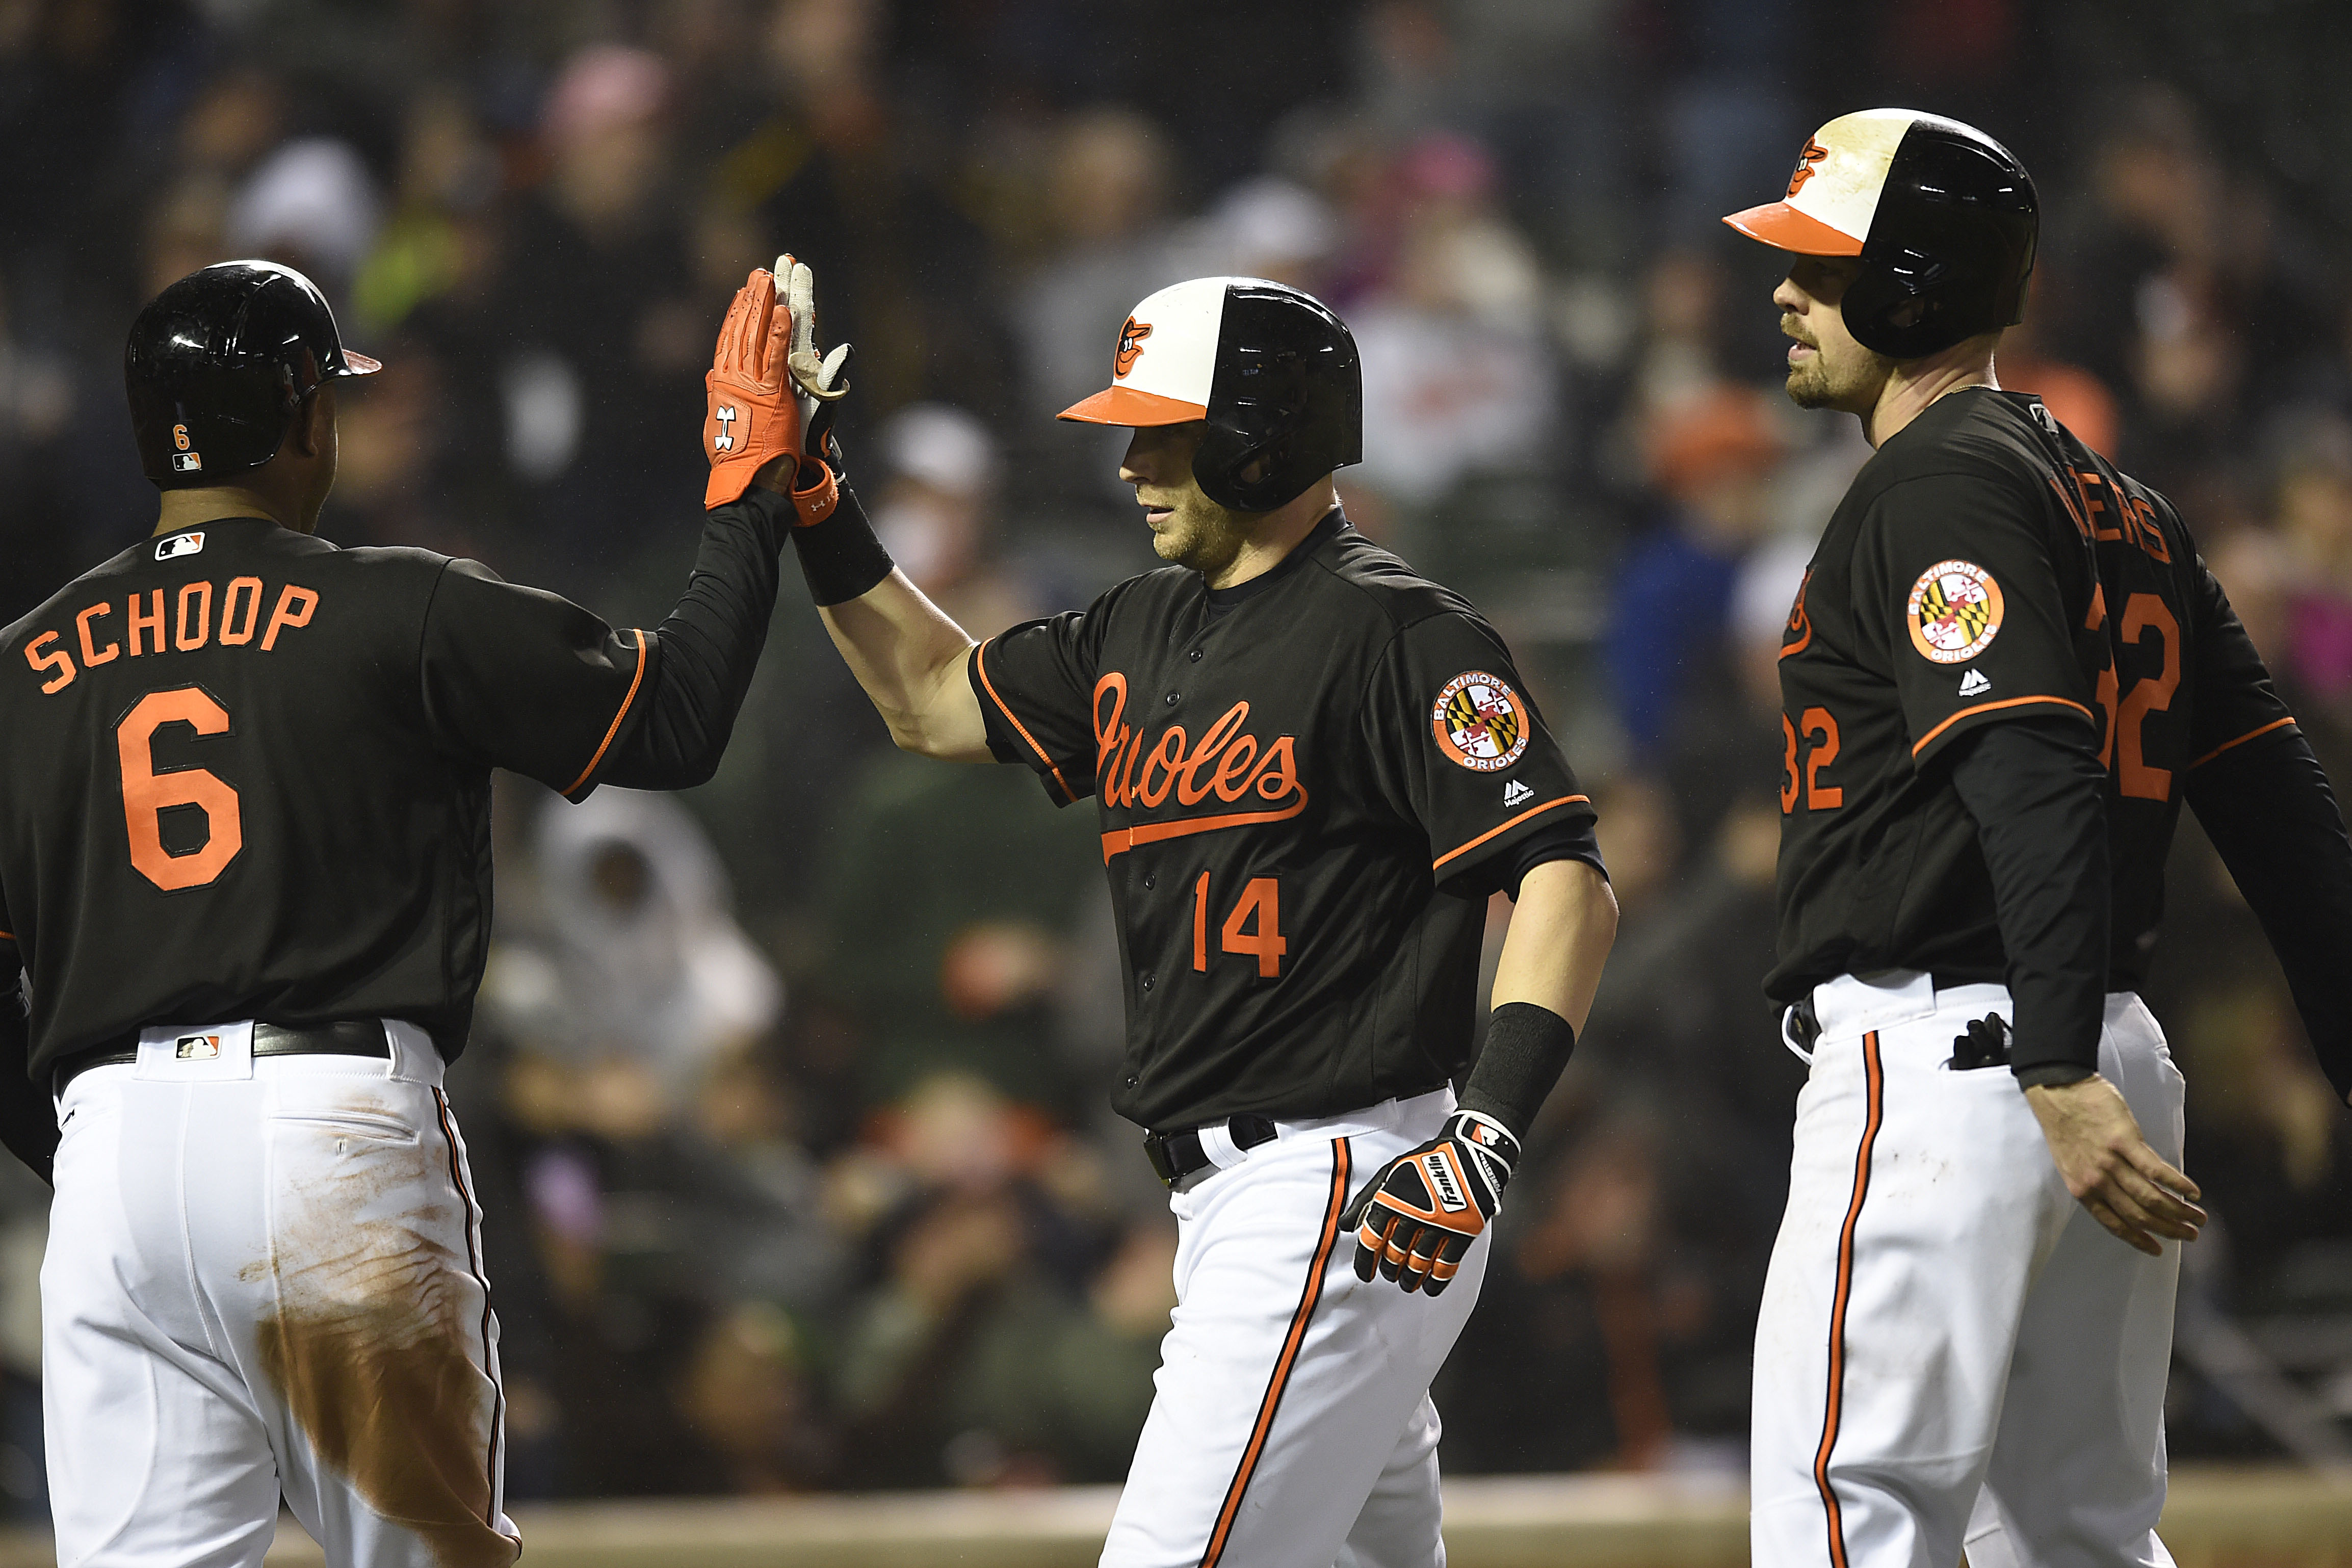 Baltimore Orioles Nolan Reimold, center, is congratulated by Jonathan Schoop, left, and Matt Wieters after hitting a three-run home run against the Chicago White Sox during the seventh inning of a baseball game, Friday, April 29, 2016, in Baltimore. The O